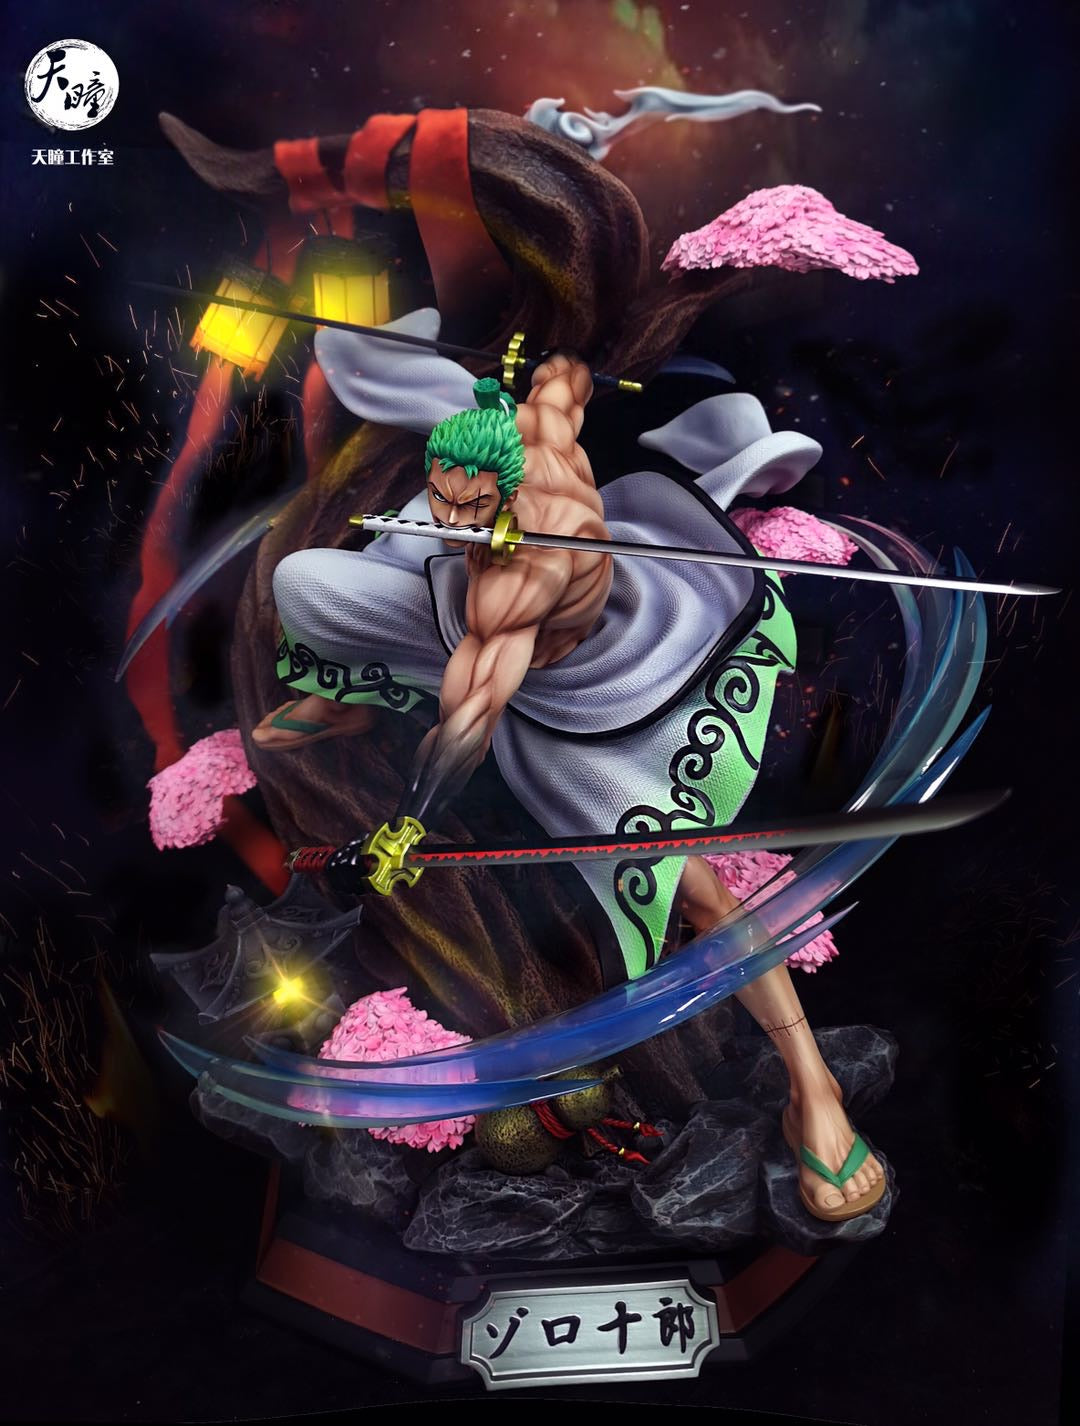 [PREORDER]Wano Zoro 1/4th Scale